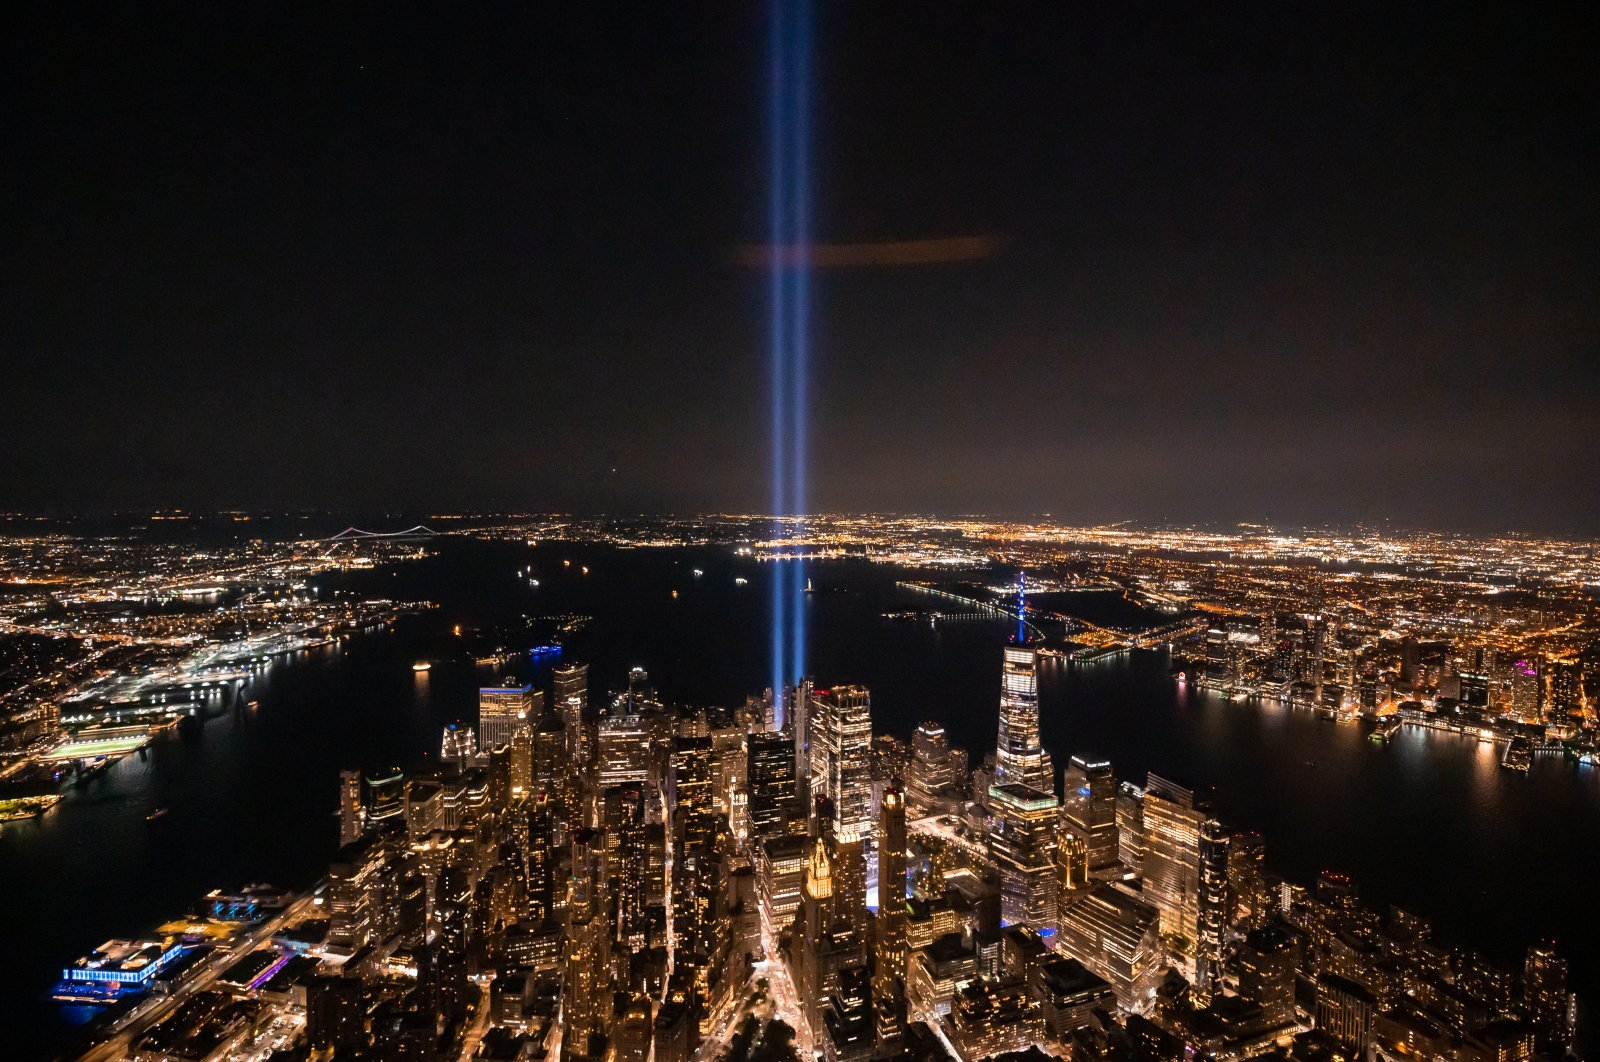 """A view of New York City and the """"Tribute In Light,"""" marking the 20th anniversary of the 9/11 terrorist attacks at the World Trade Center, in New York City, U.S., Sept. 11, 2021. (Photo by Getty Images)"""